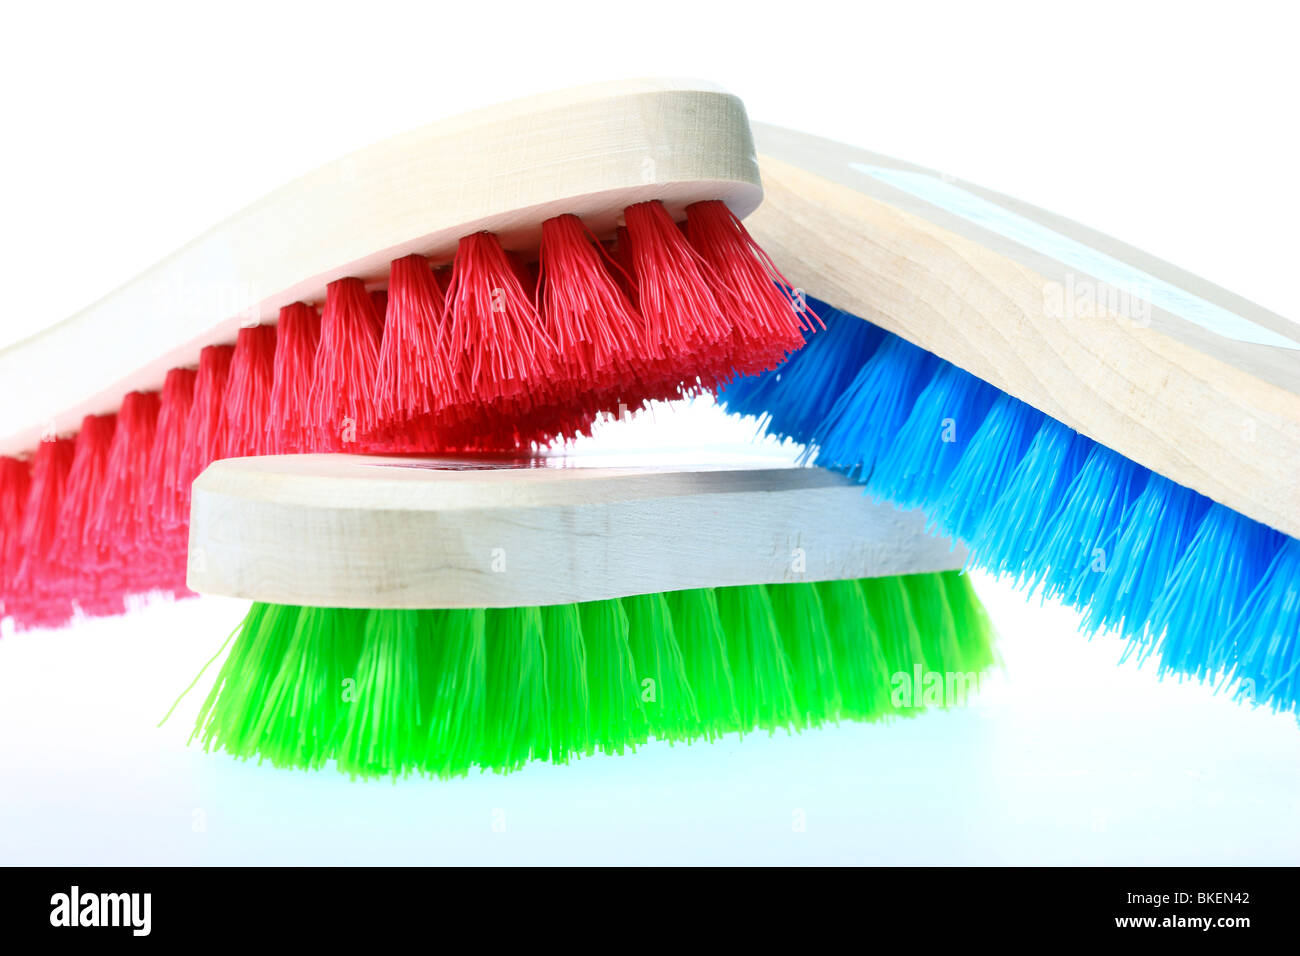 colorful scrubbing brushes, wooden, plastic hairs, Germany. Europe. - Stock Image